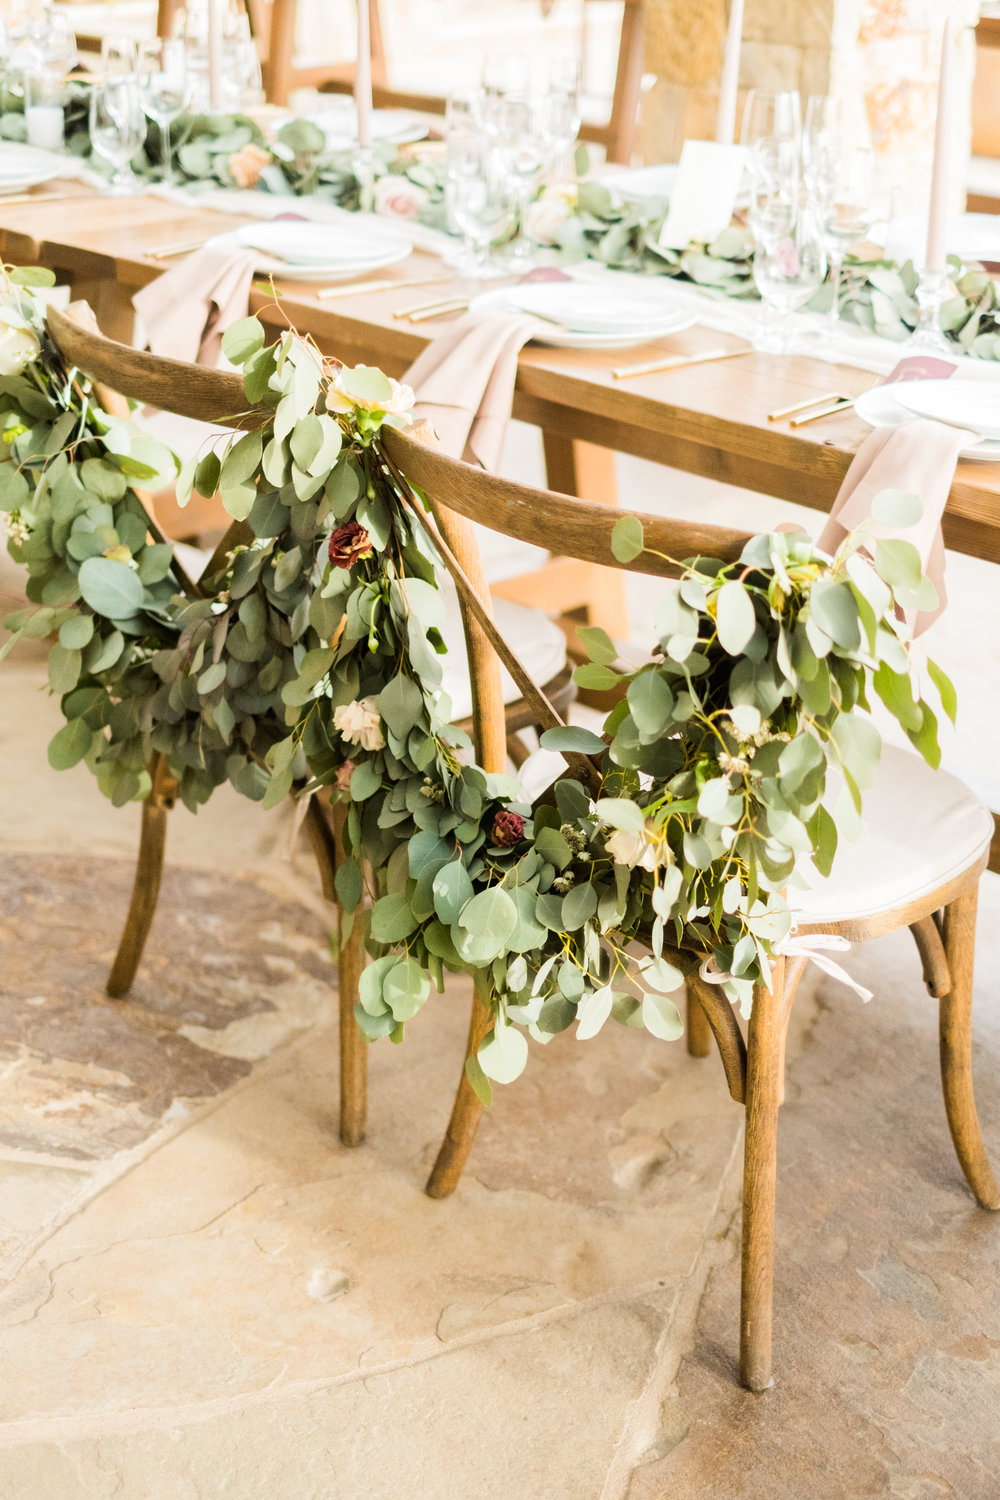 Spring Wedding at Romantic Hilltop Vineyard Malibu Rocky Oaks Sally Pinera Finding Flora Chair Decor Garland Greenery Sweetheart Table So Happi Together